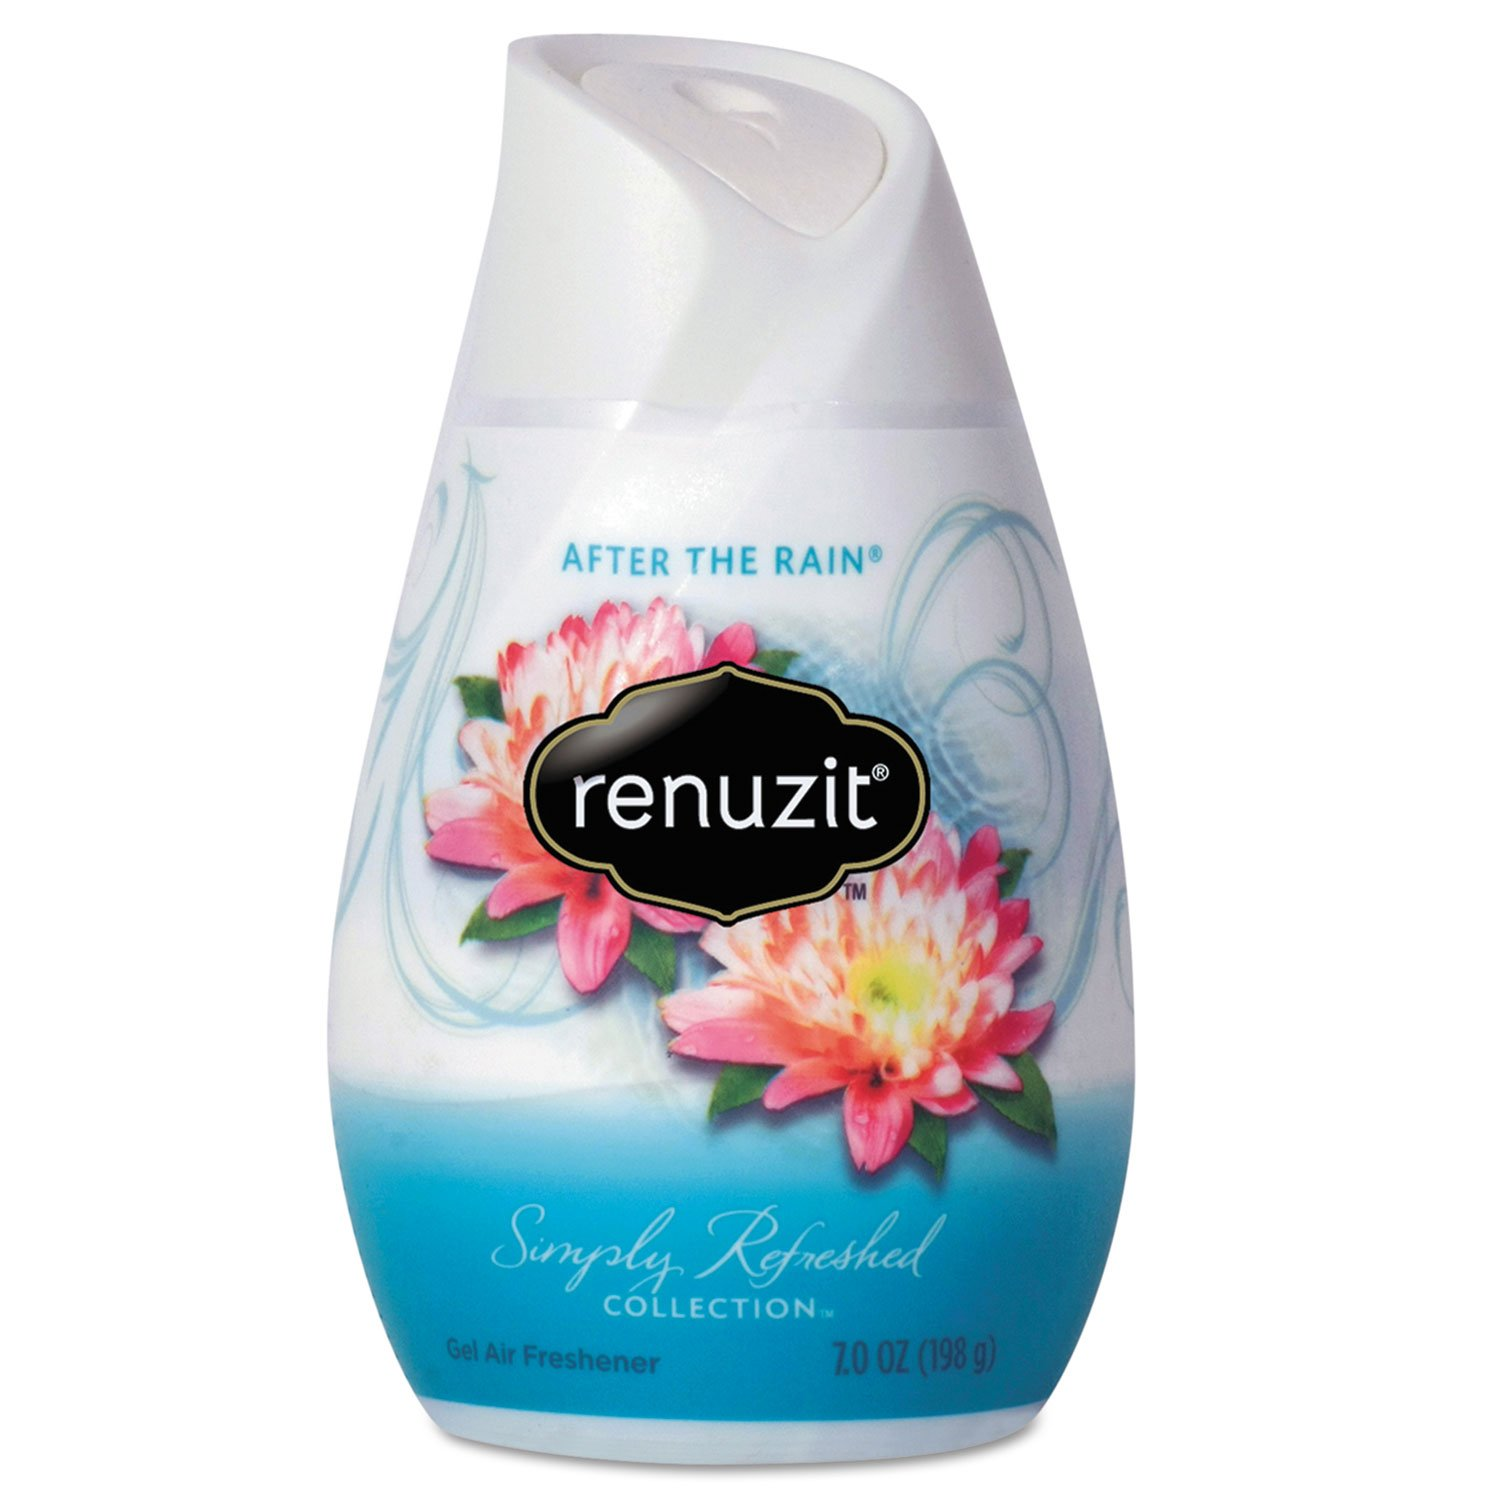 Adjustables Air Freshener, After The Rain Scent, Solid, 7 Oz, 12/carton